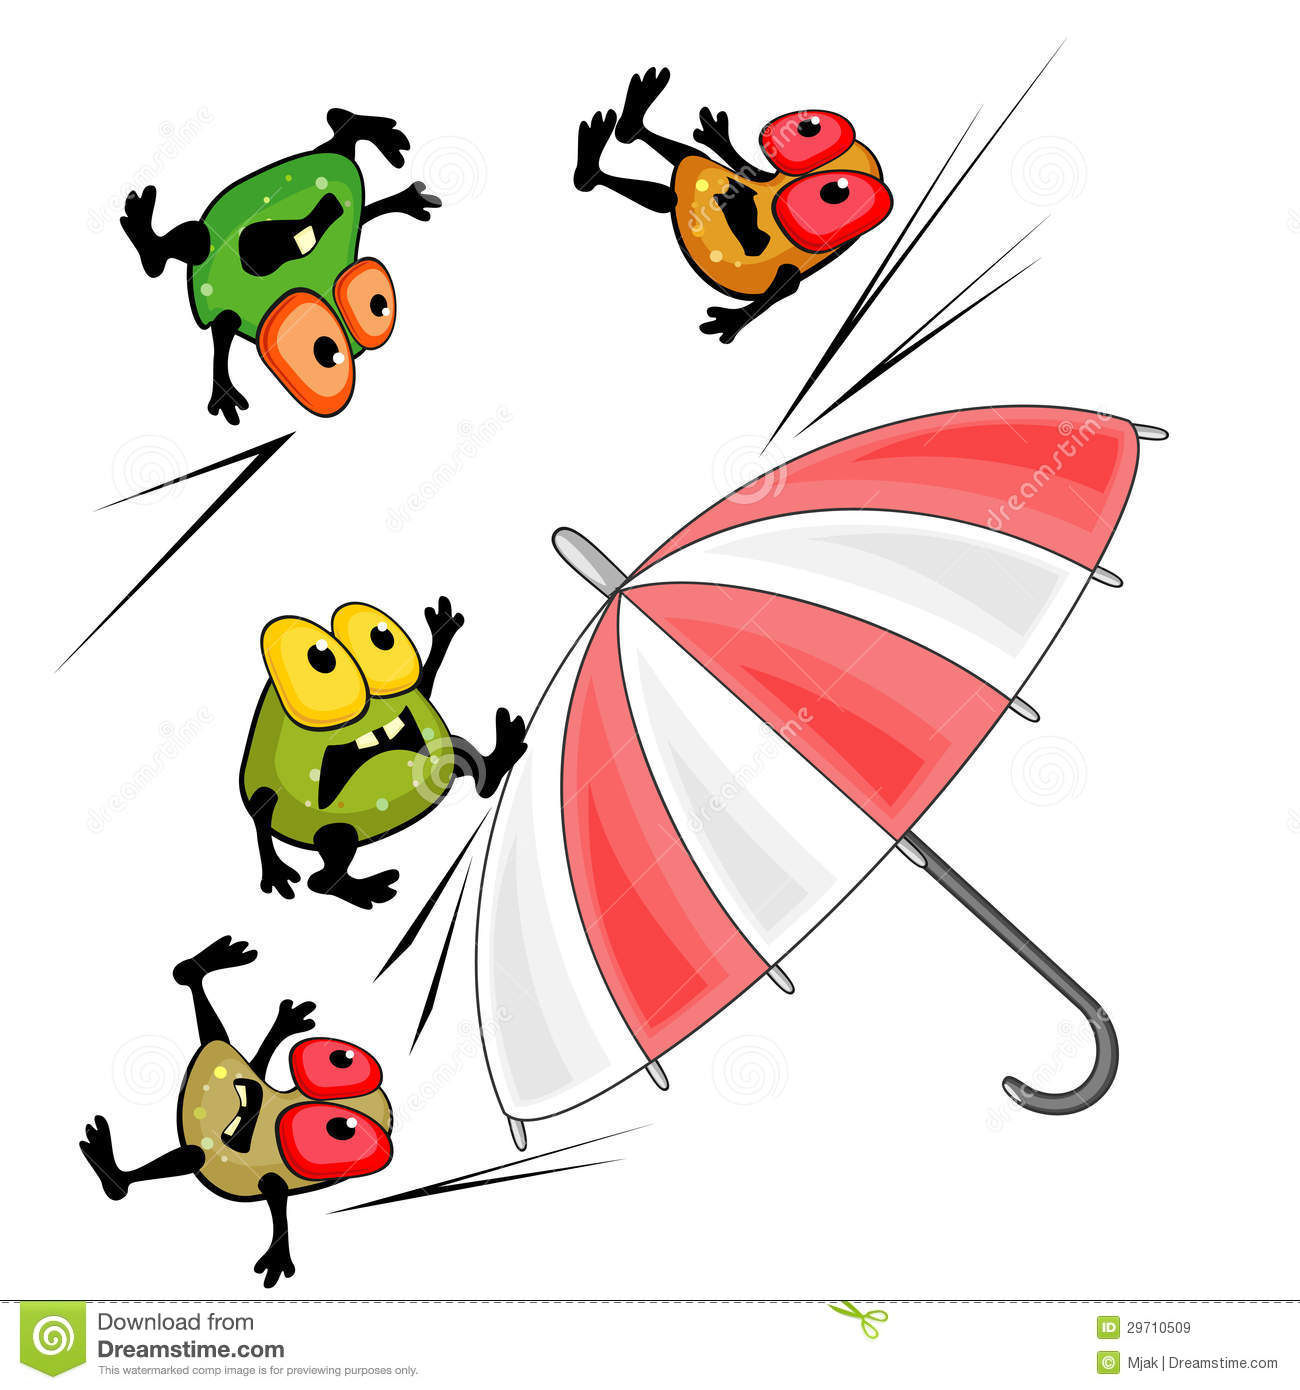 Bright umbrella and germs as concept of antibacterial action or